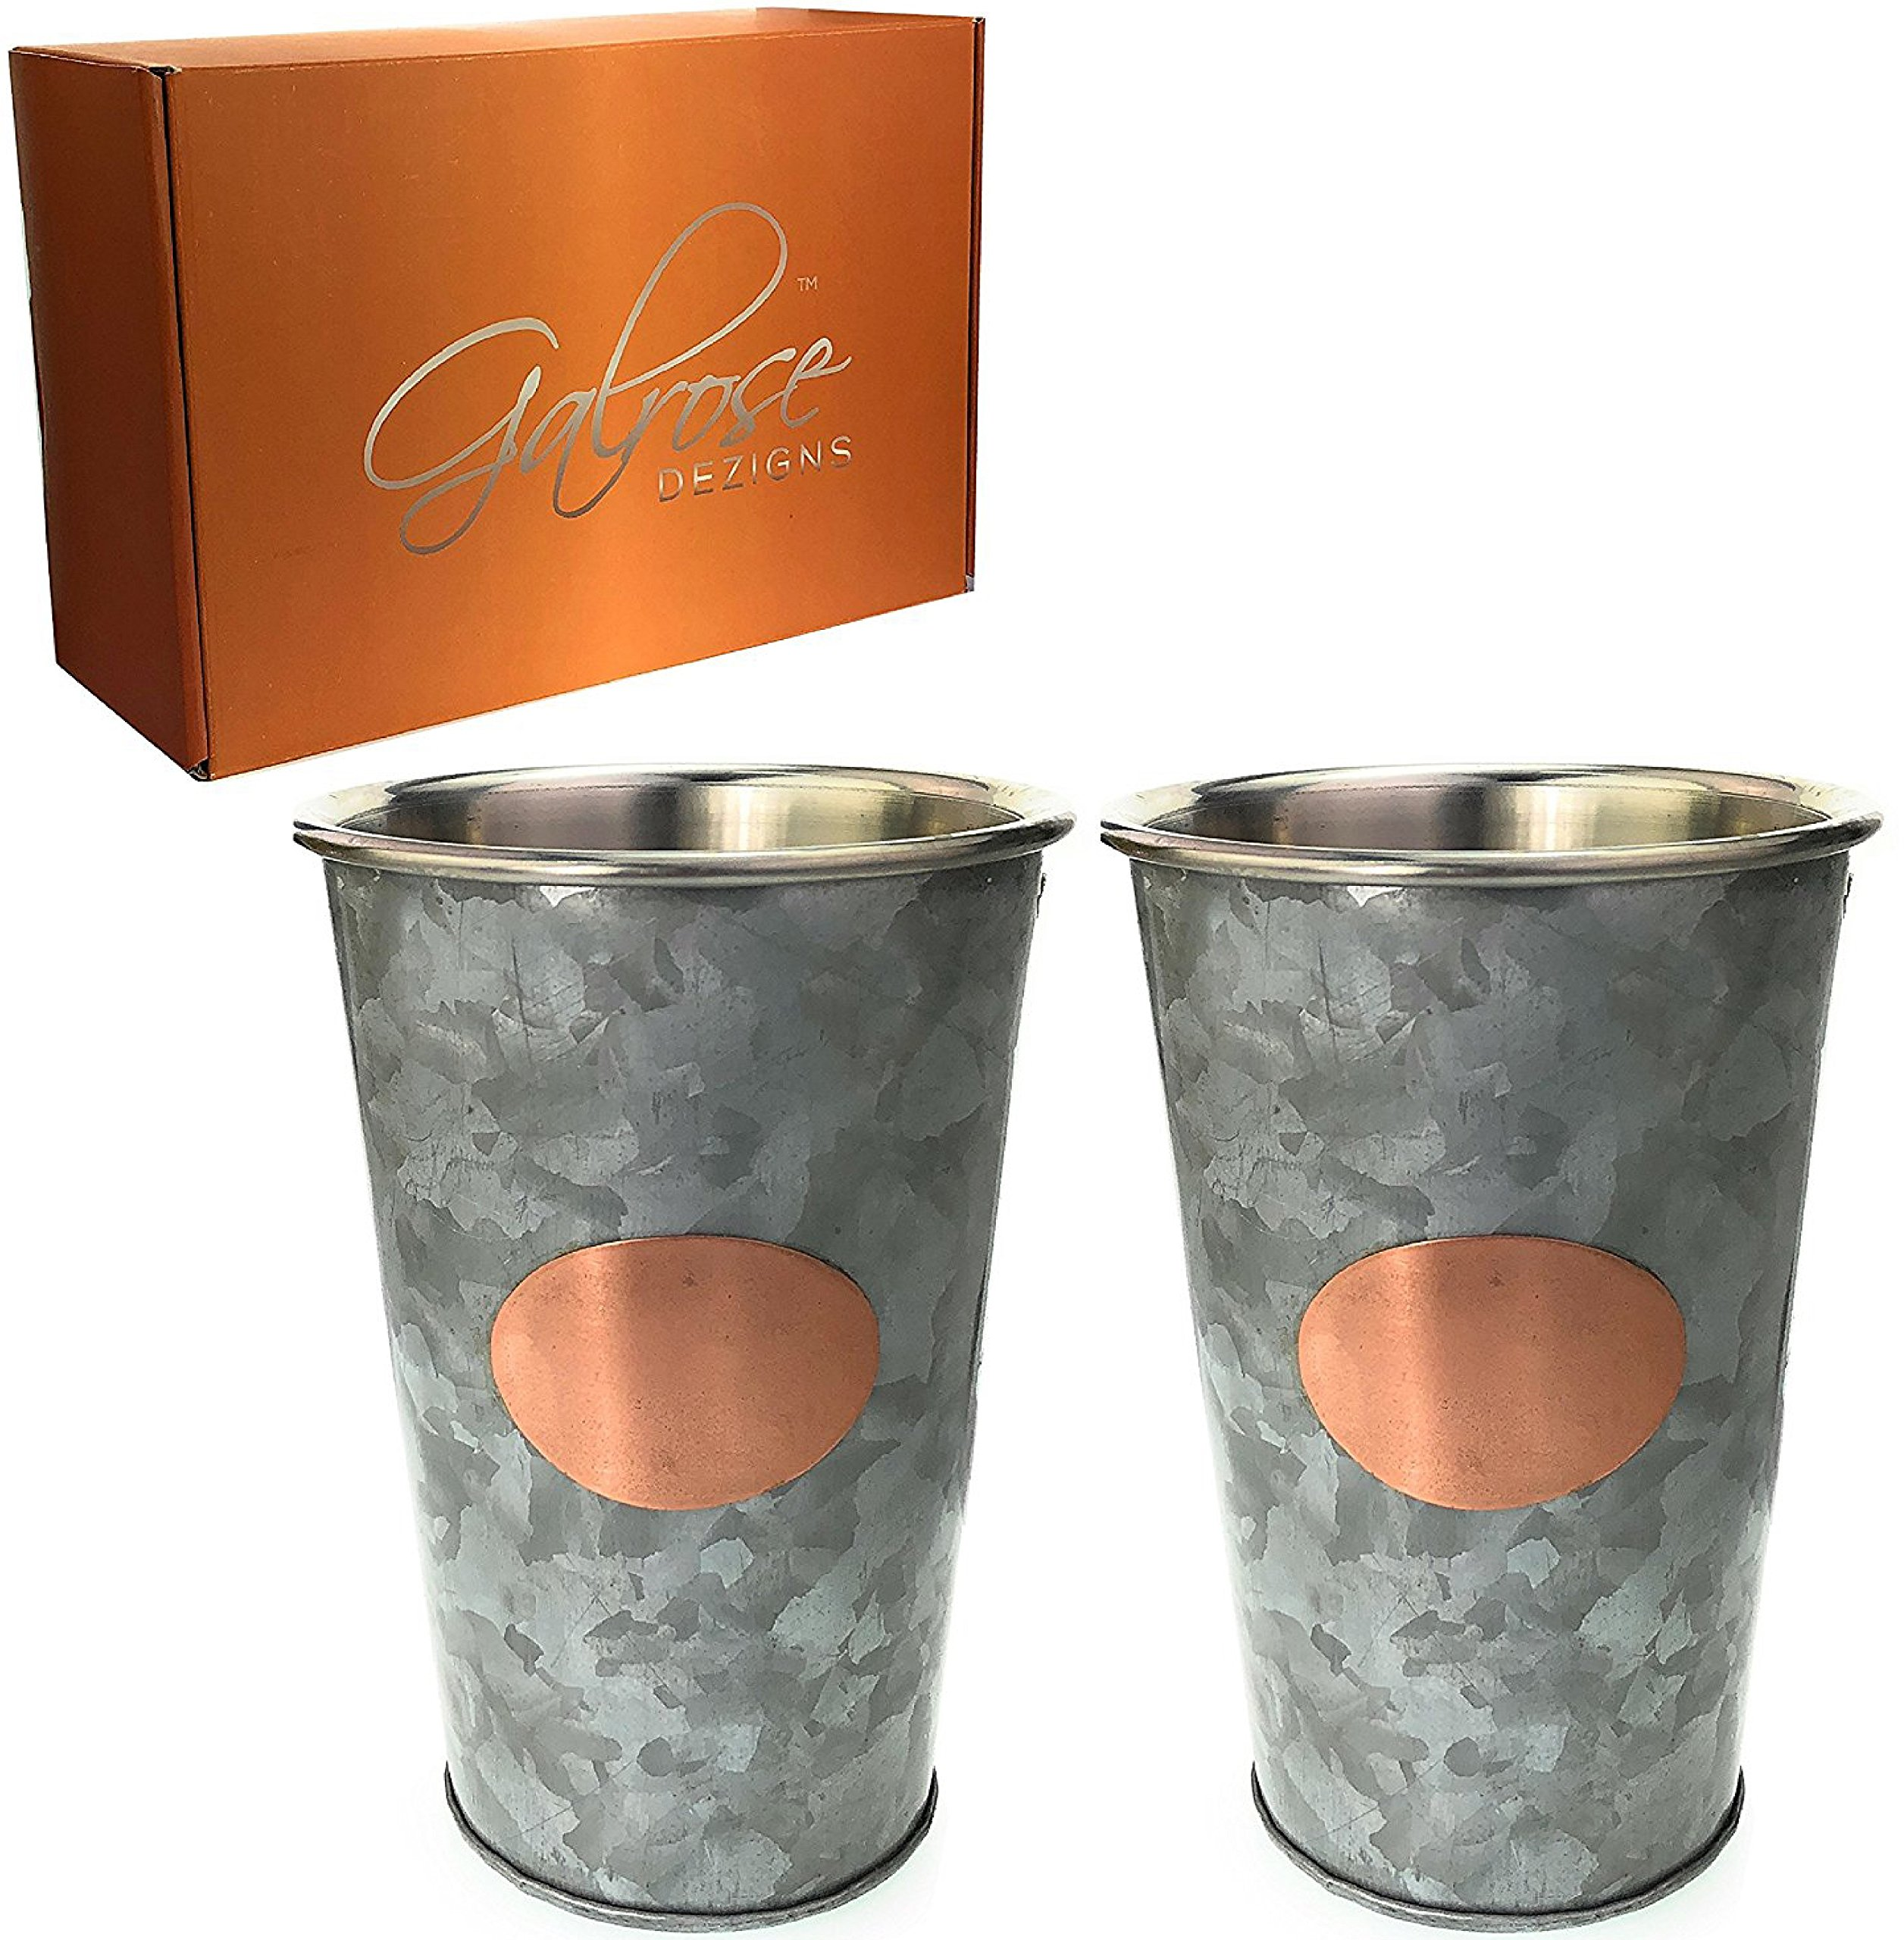 Galrose Unique MINT JULEP CUPS - 2 Galvanized Iron 16oz BEER DRINKING GLASSES Stylish MOSCOW MULE MUGS Stainless Steel Lined Double Wall Rose Gold Plaque - 6th Wedding Anniversary Gifts for Couple by Galrose Dezigns